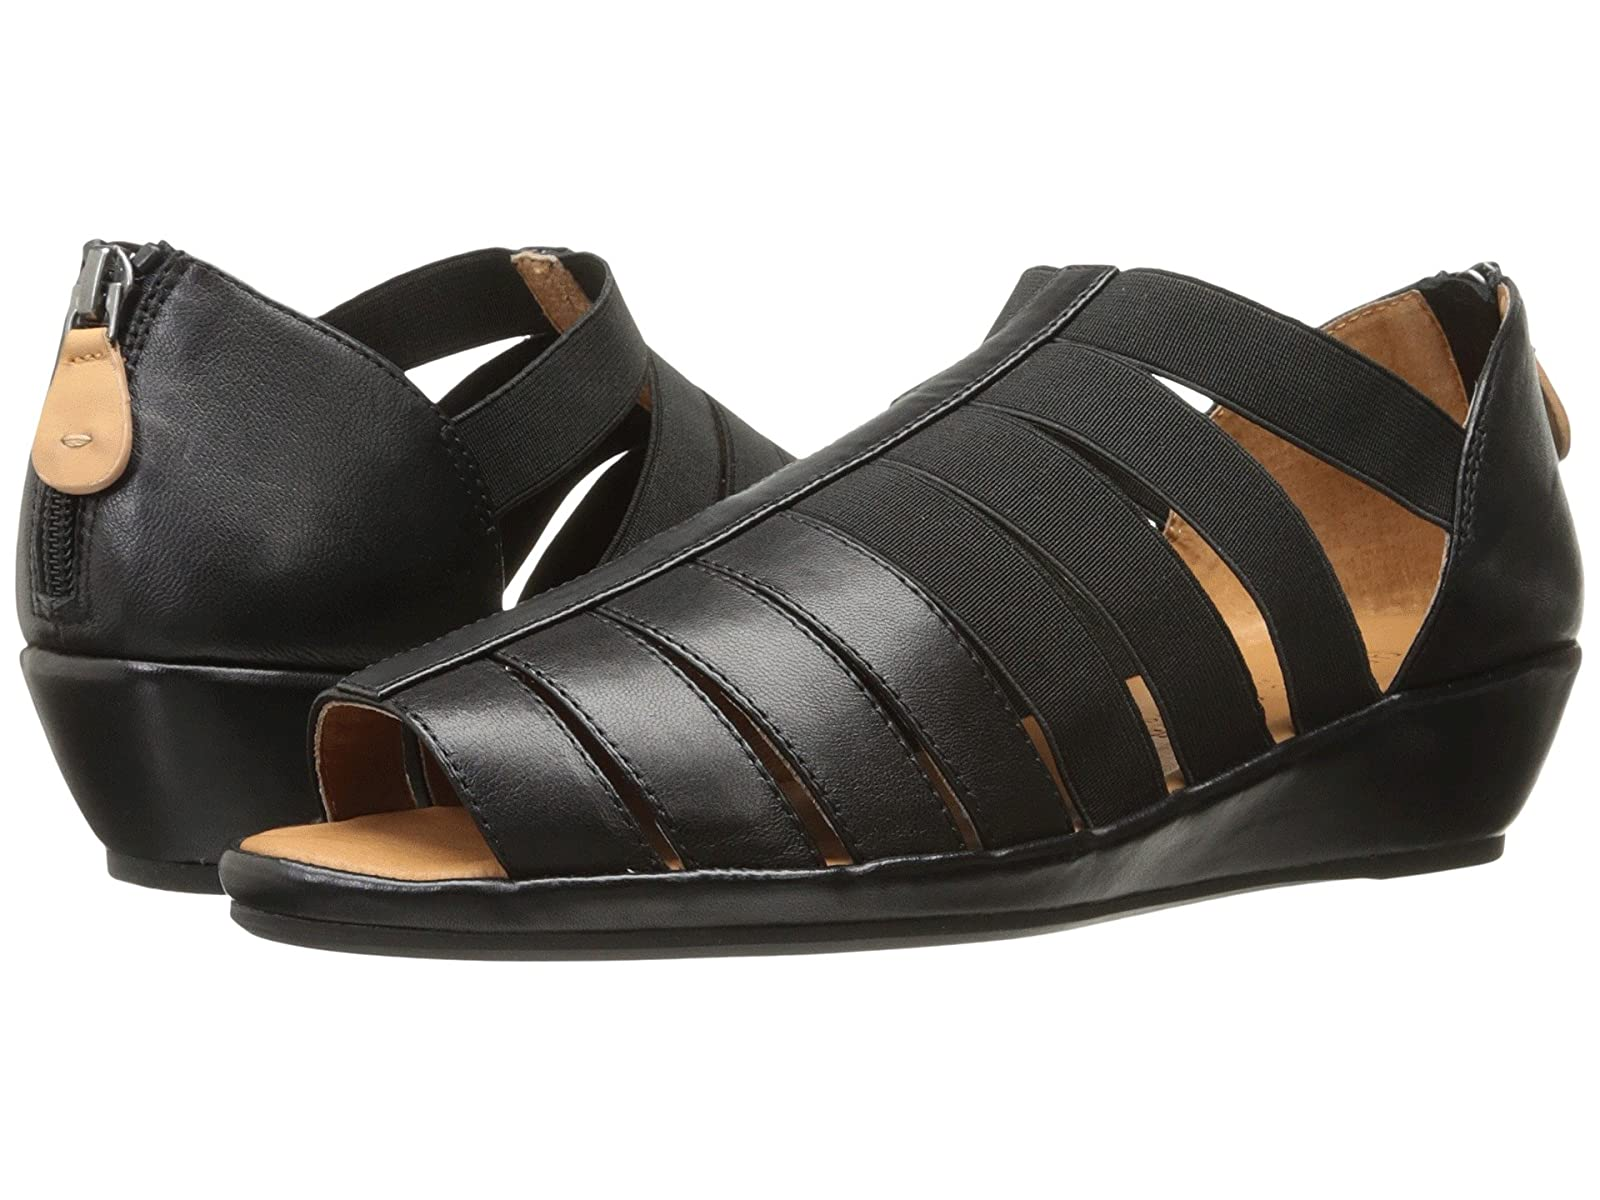 Gentle Souls by Kenneth Cole LanaCheap and distinctive eye-catching shoes